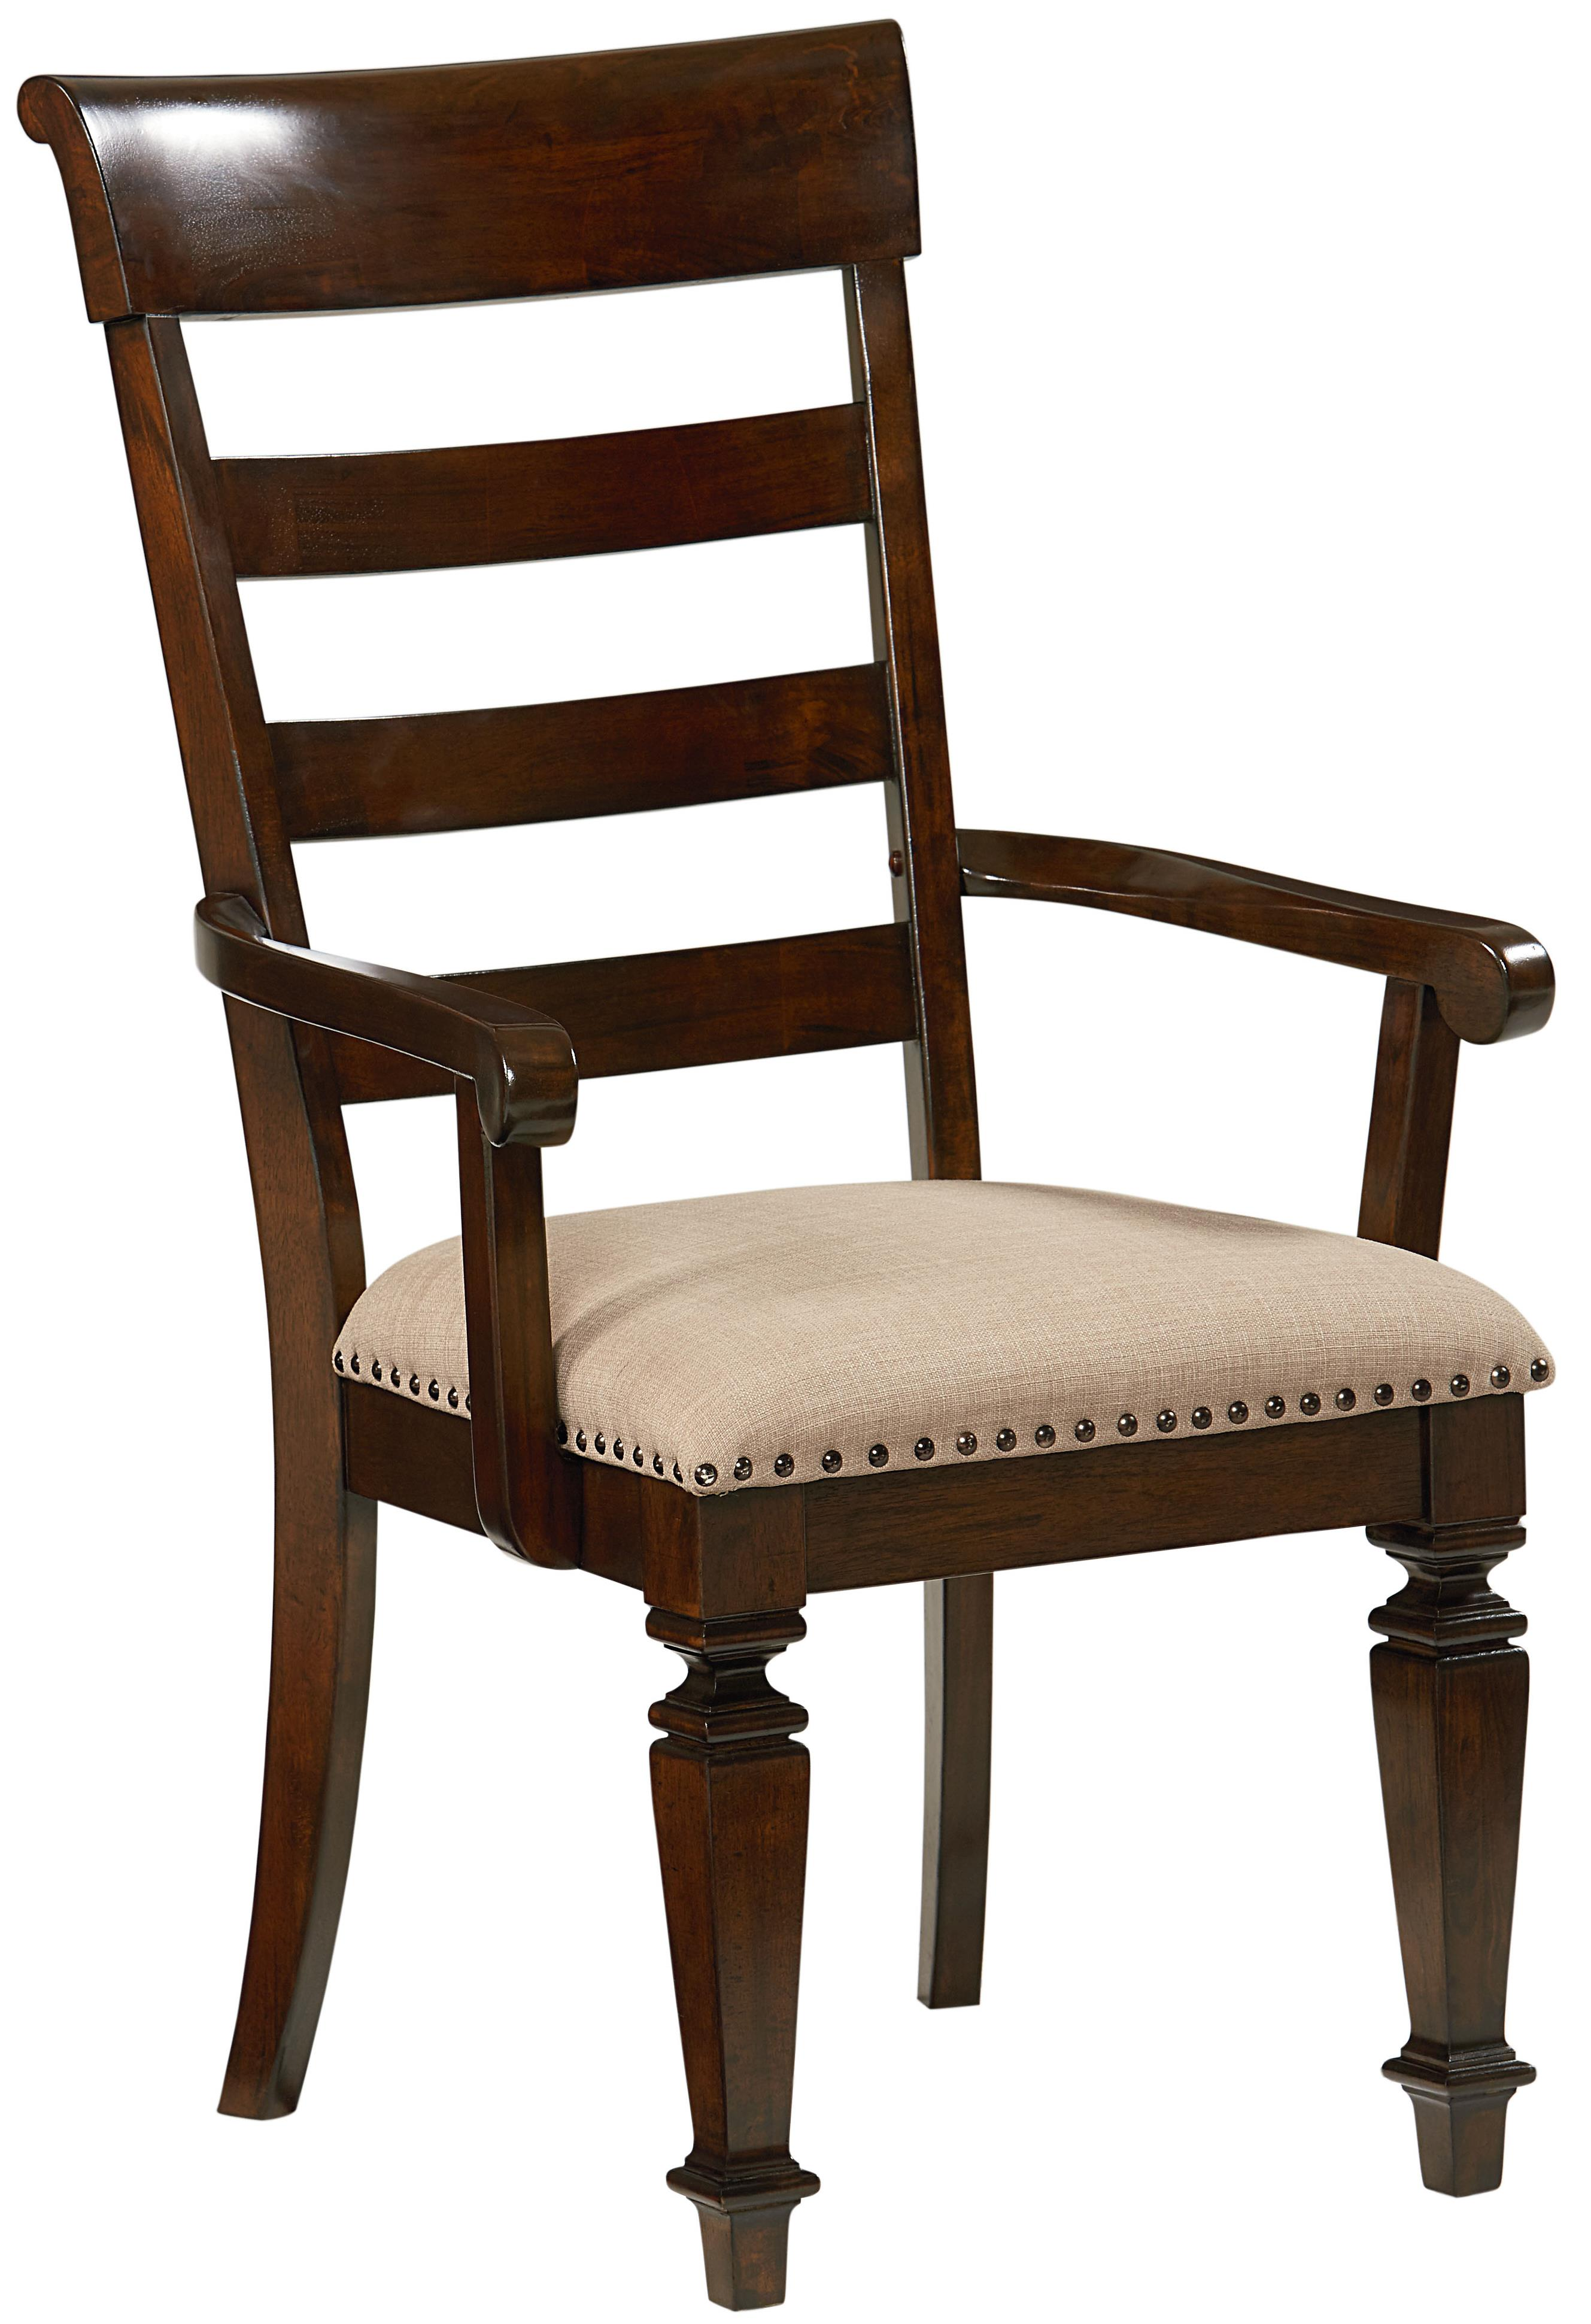 Standard Furniture Charleston Arm Chair                 - Item Number: 16725